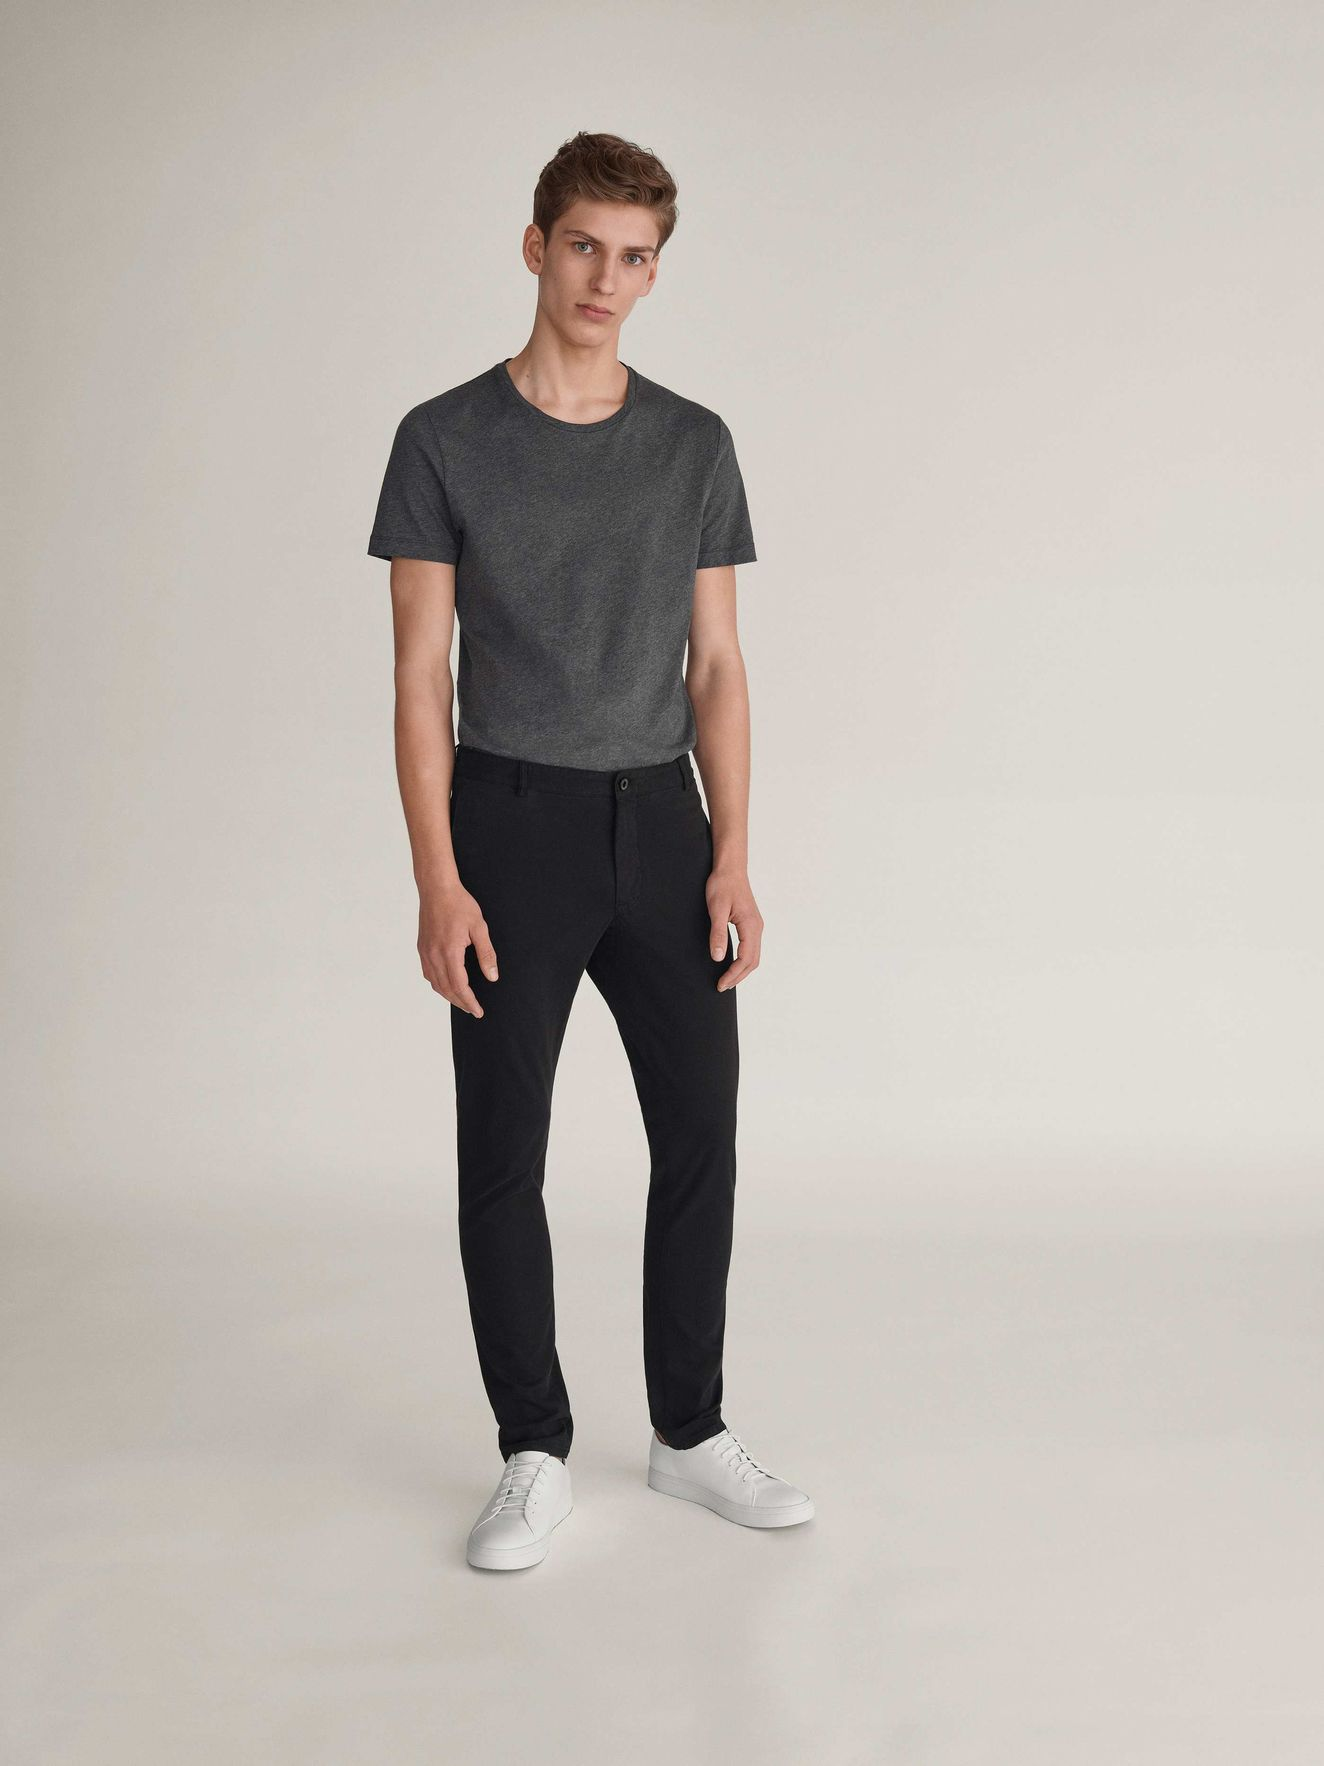 Premium quality black trousers for men summer collection 2019